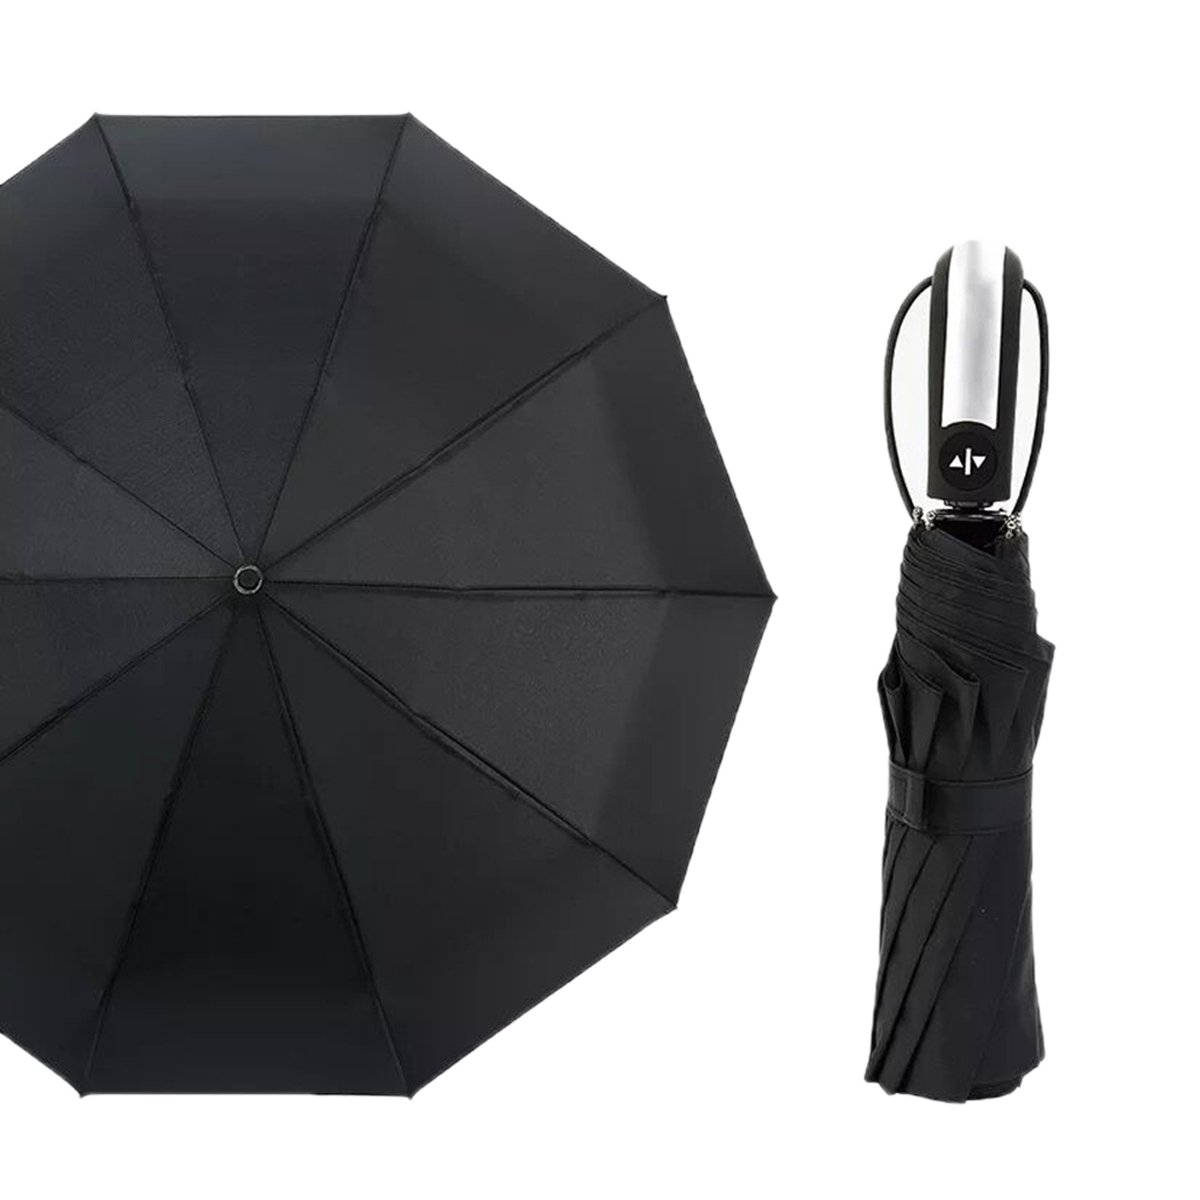 Folding Travel Windproof Umbrella Unbreakable Lightweight 10 Ribs Automatic Compact Canopy Umbrellas